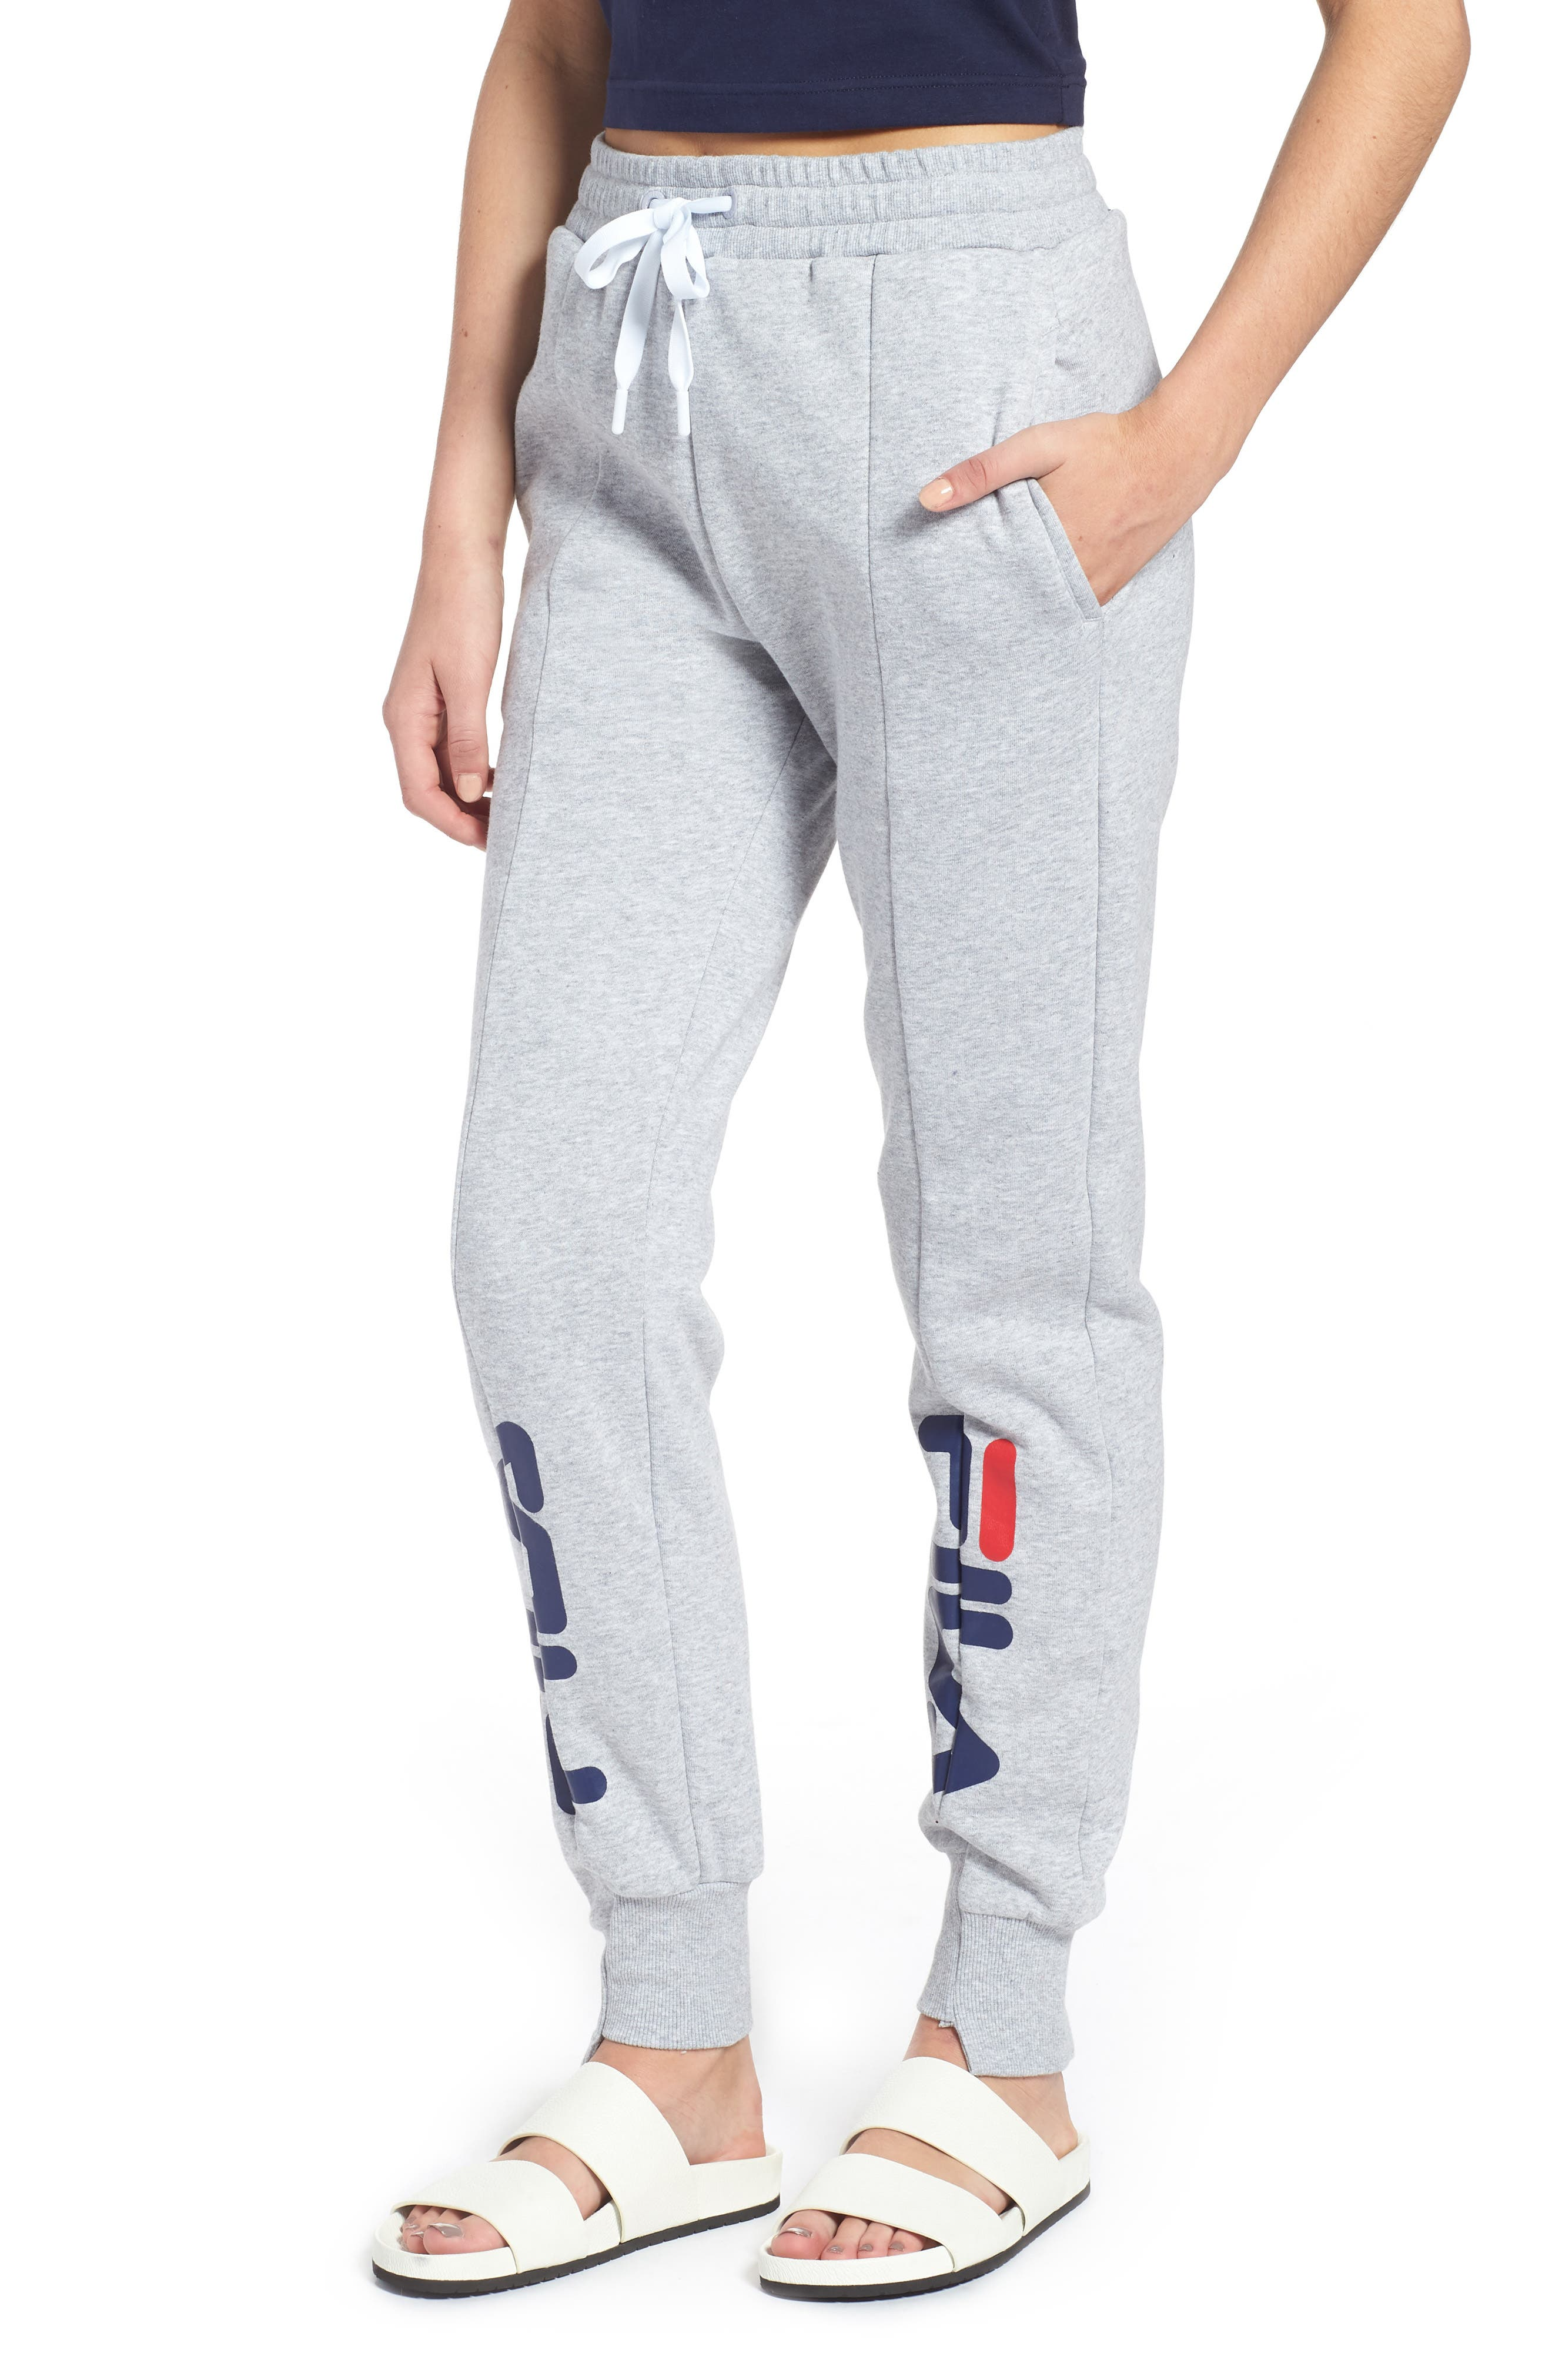 ALESSIA RECONSTRUCTED JOGGERS